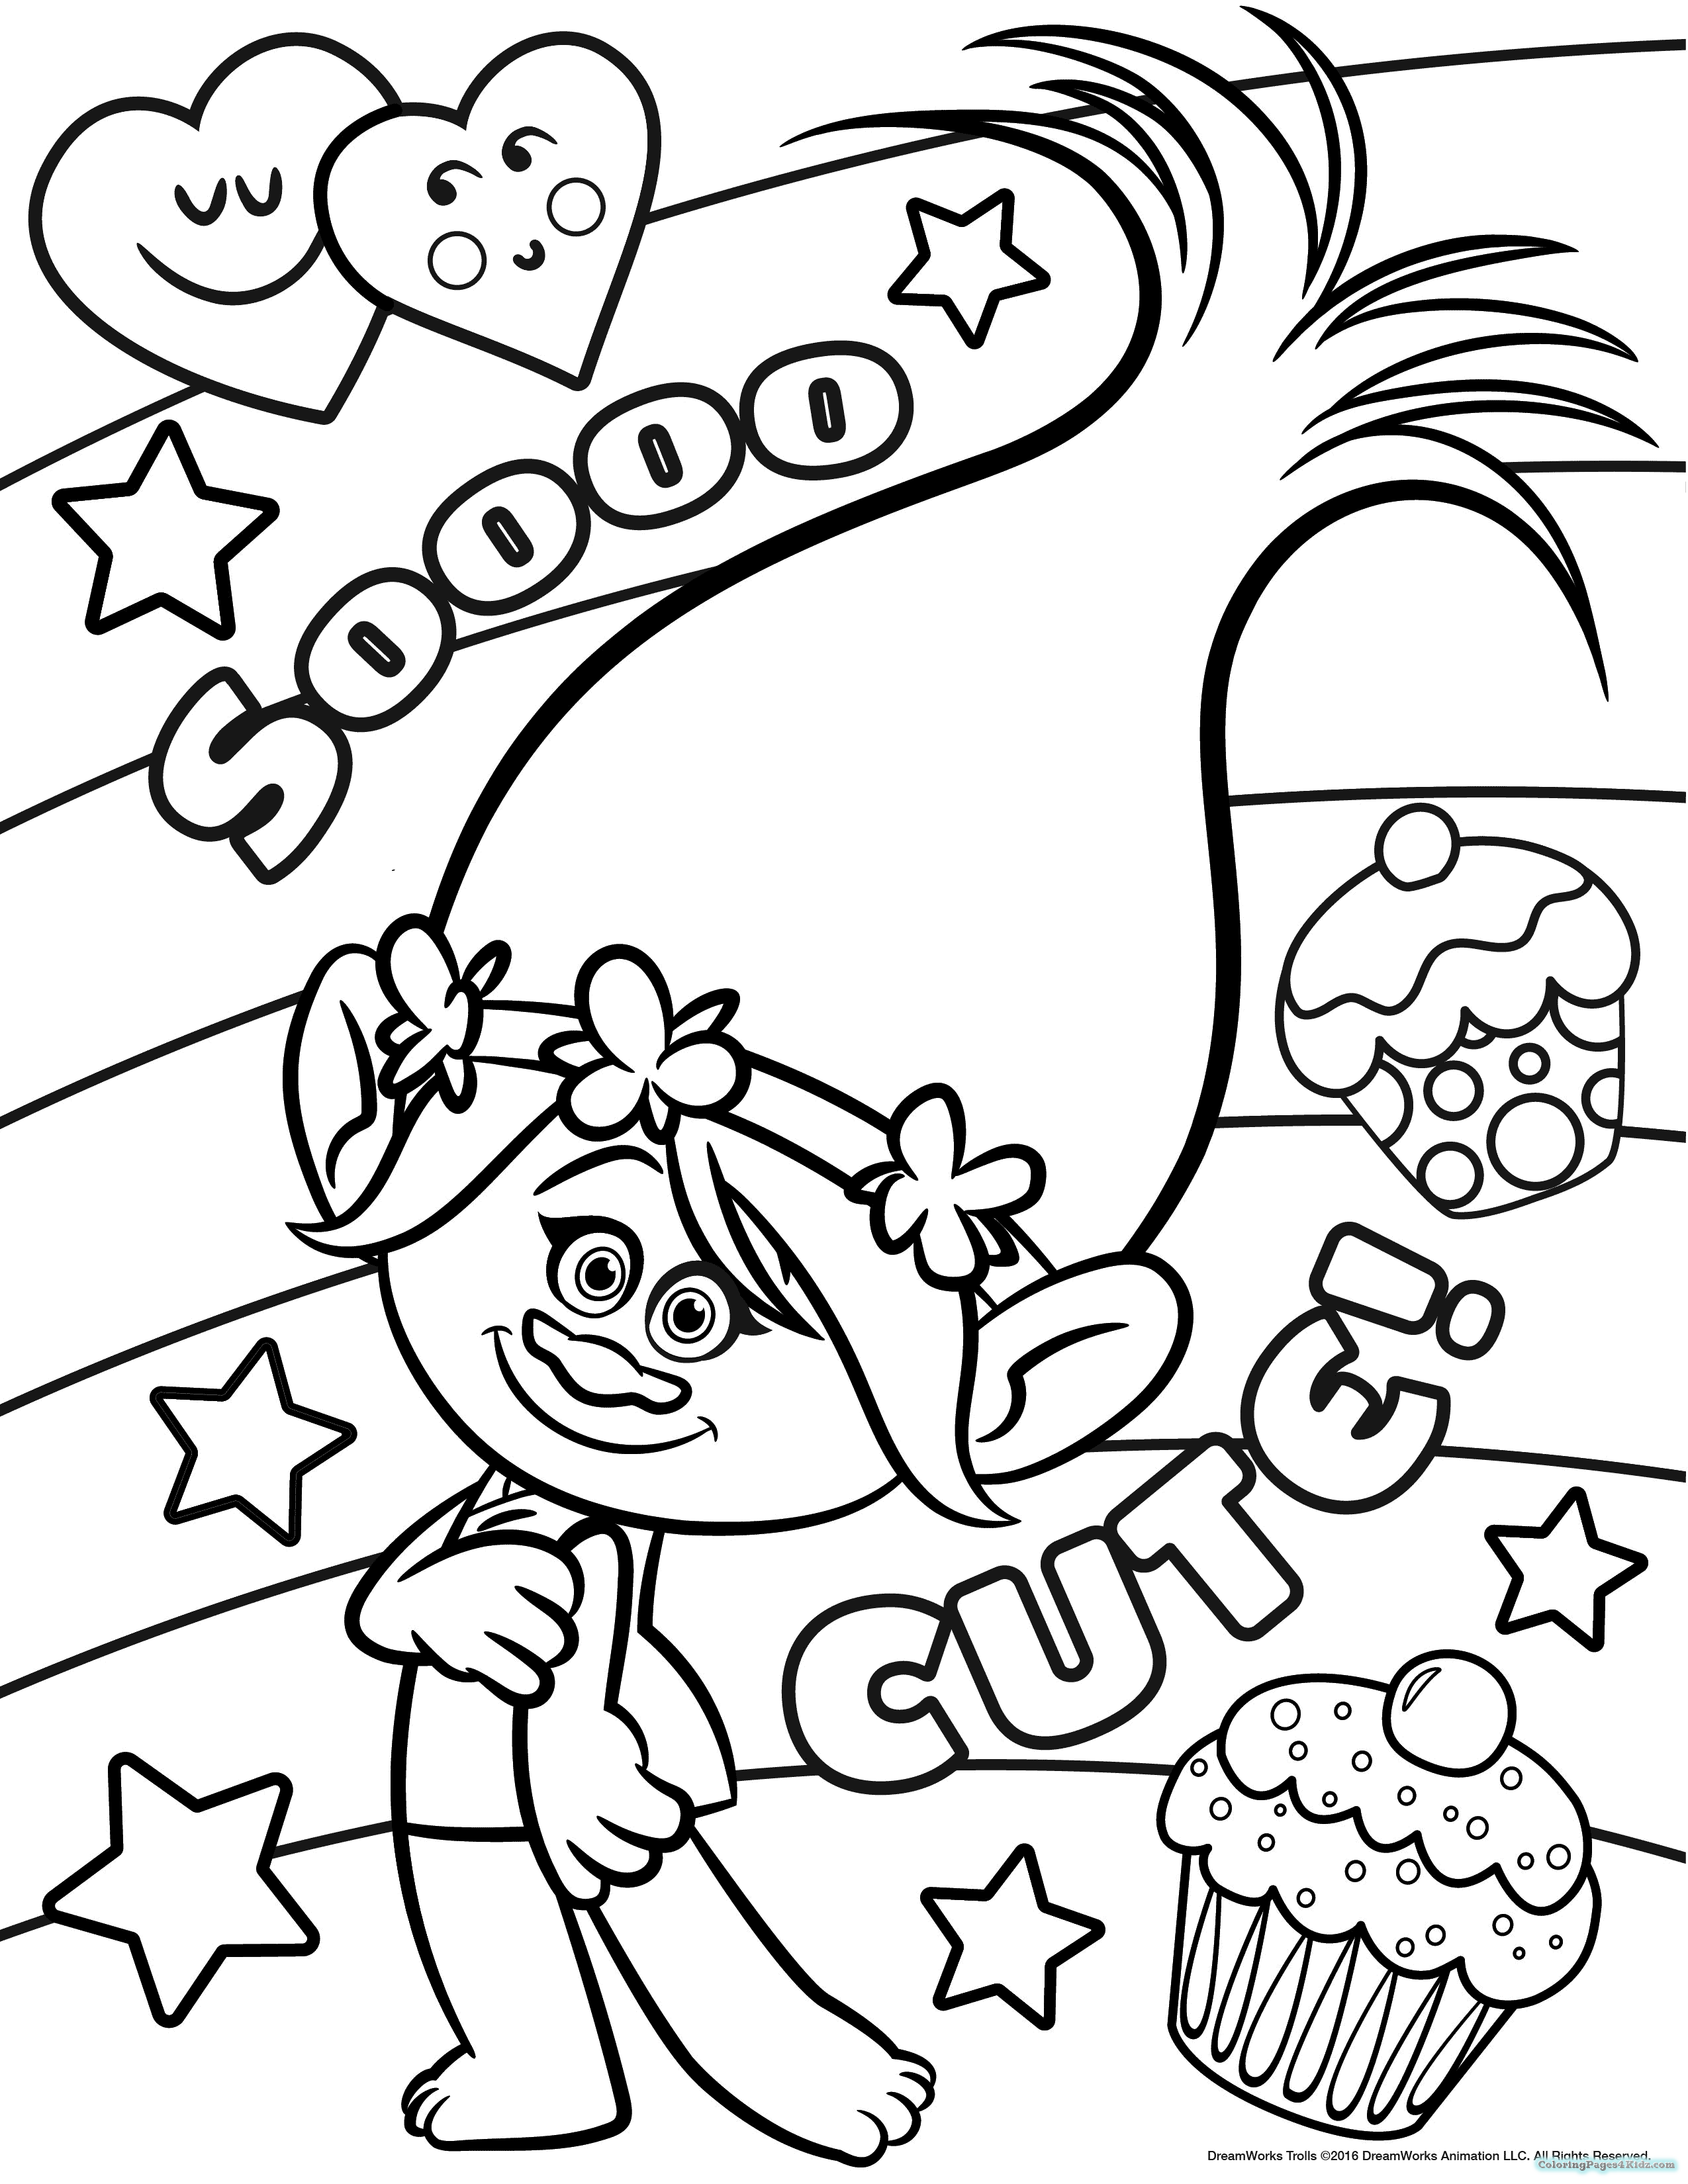 Trolls Coloring Pages For Dreamworks Coloring Pages For Free Disney Coloring Pages Poppy Coloring Page Disney Coloring Pages